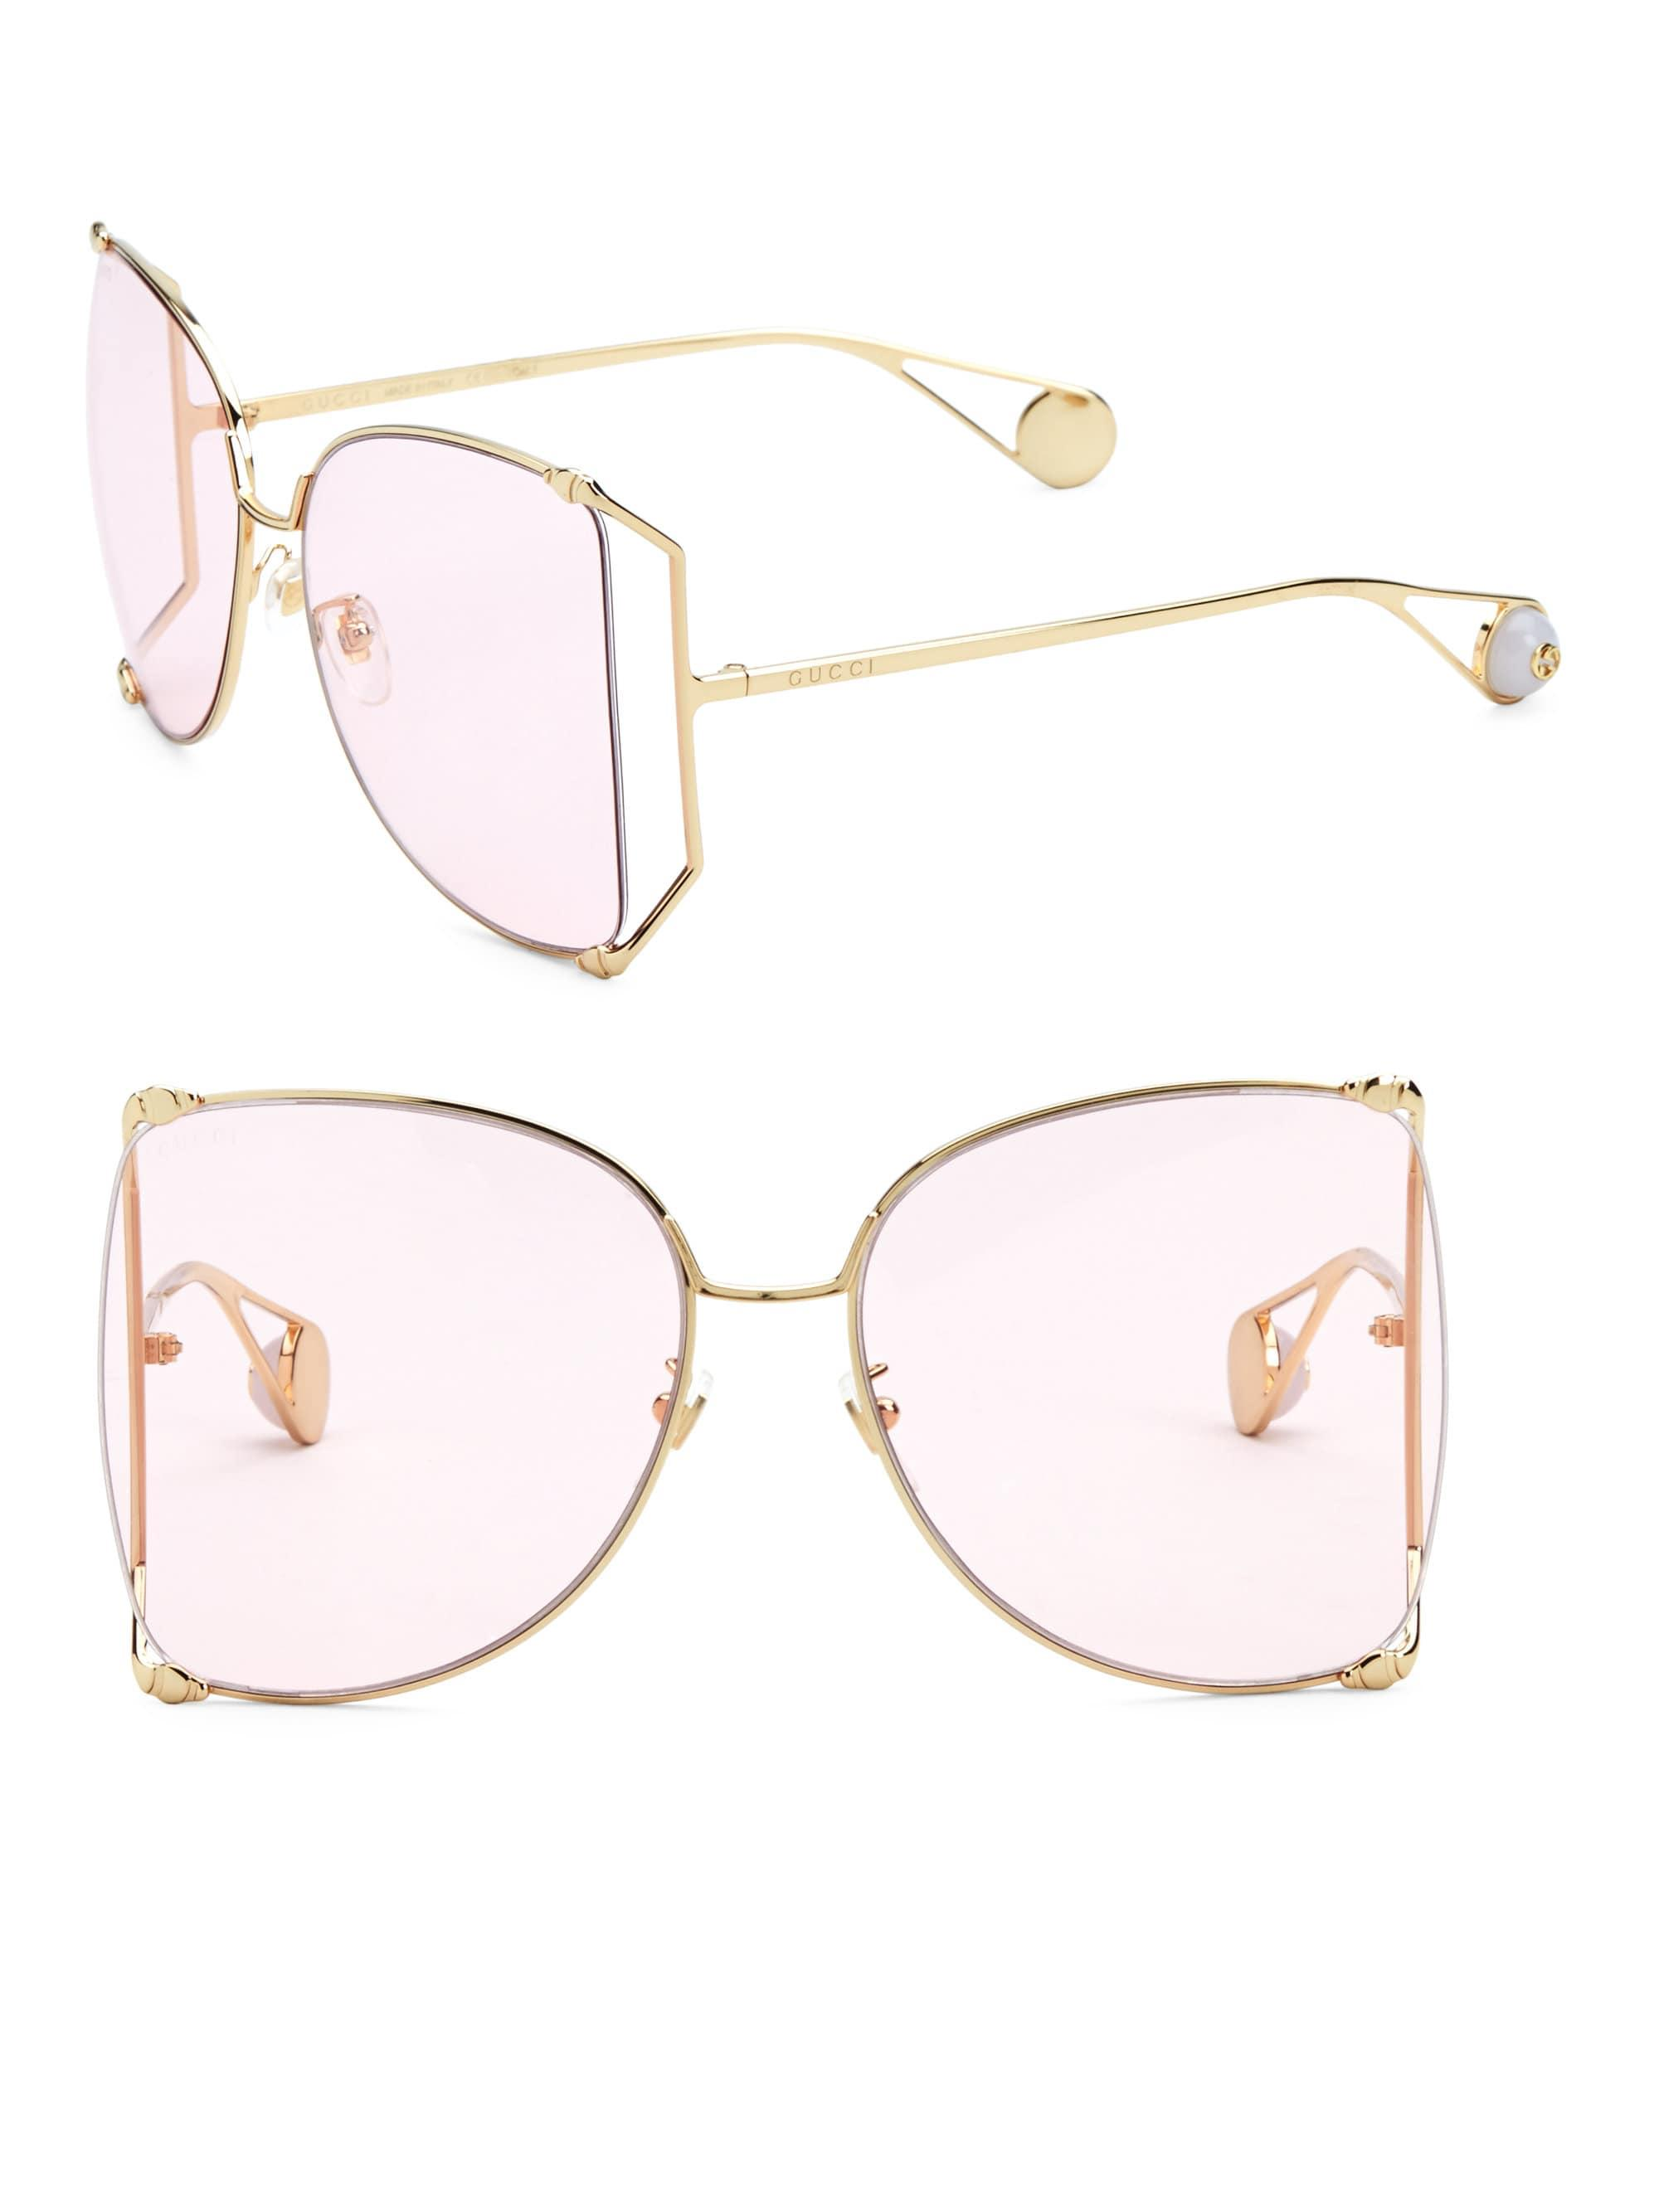 59d8673450 Lyst - Gucci Women s 63mm Butterfly Sunglasses - Gold in Metallic